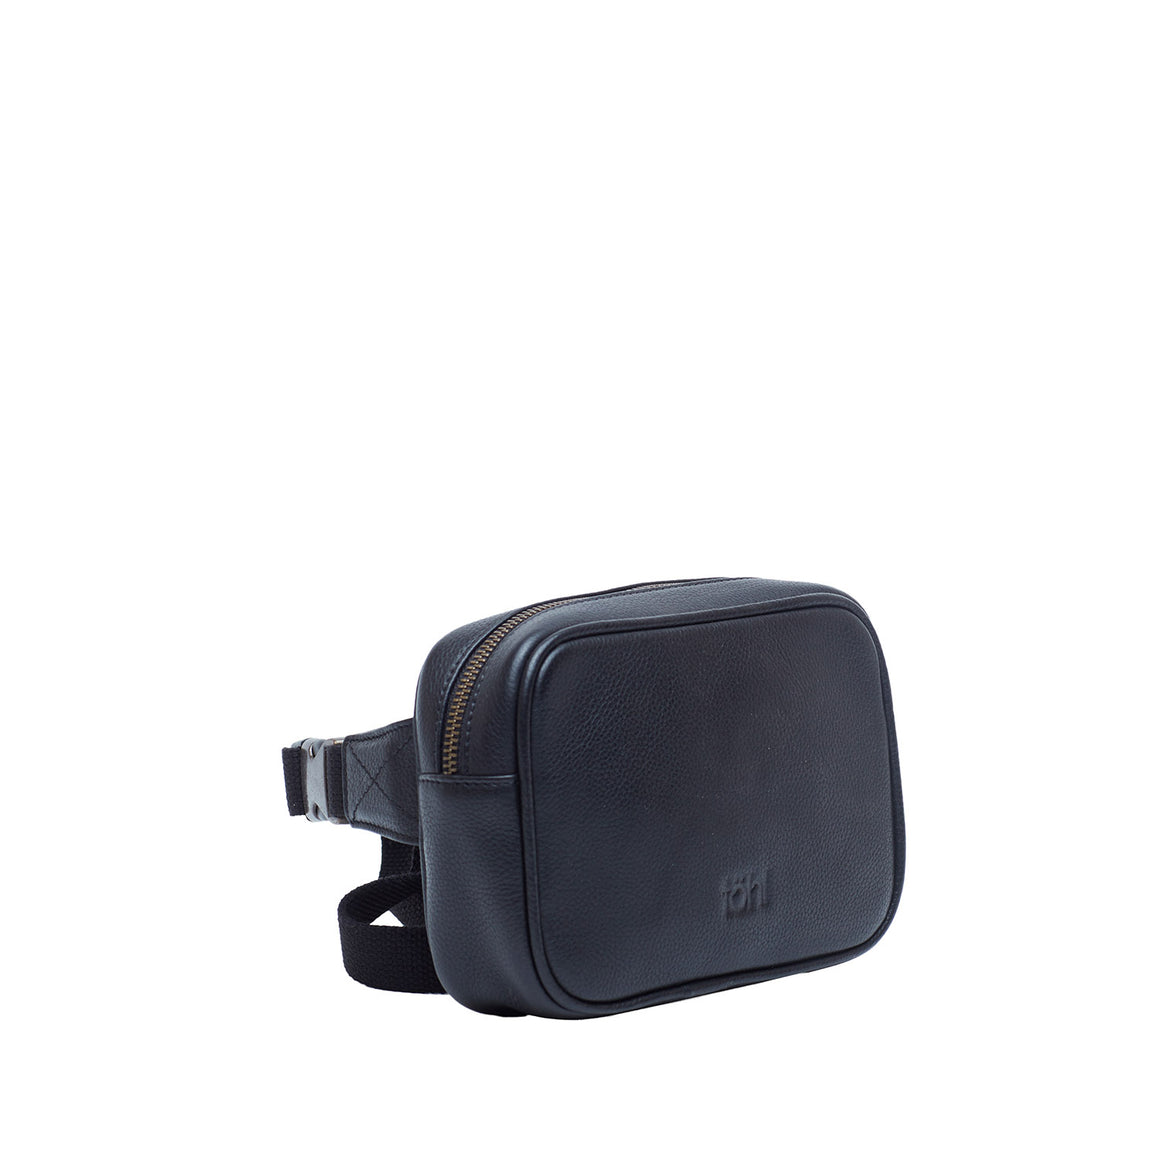 WP 0003 - TOHL ABEL MEN'S WAIST POUCHES - CHARCOAL BLACK